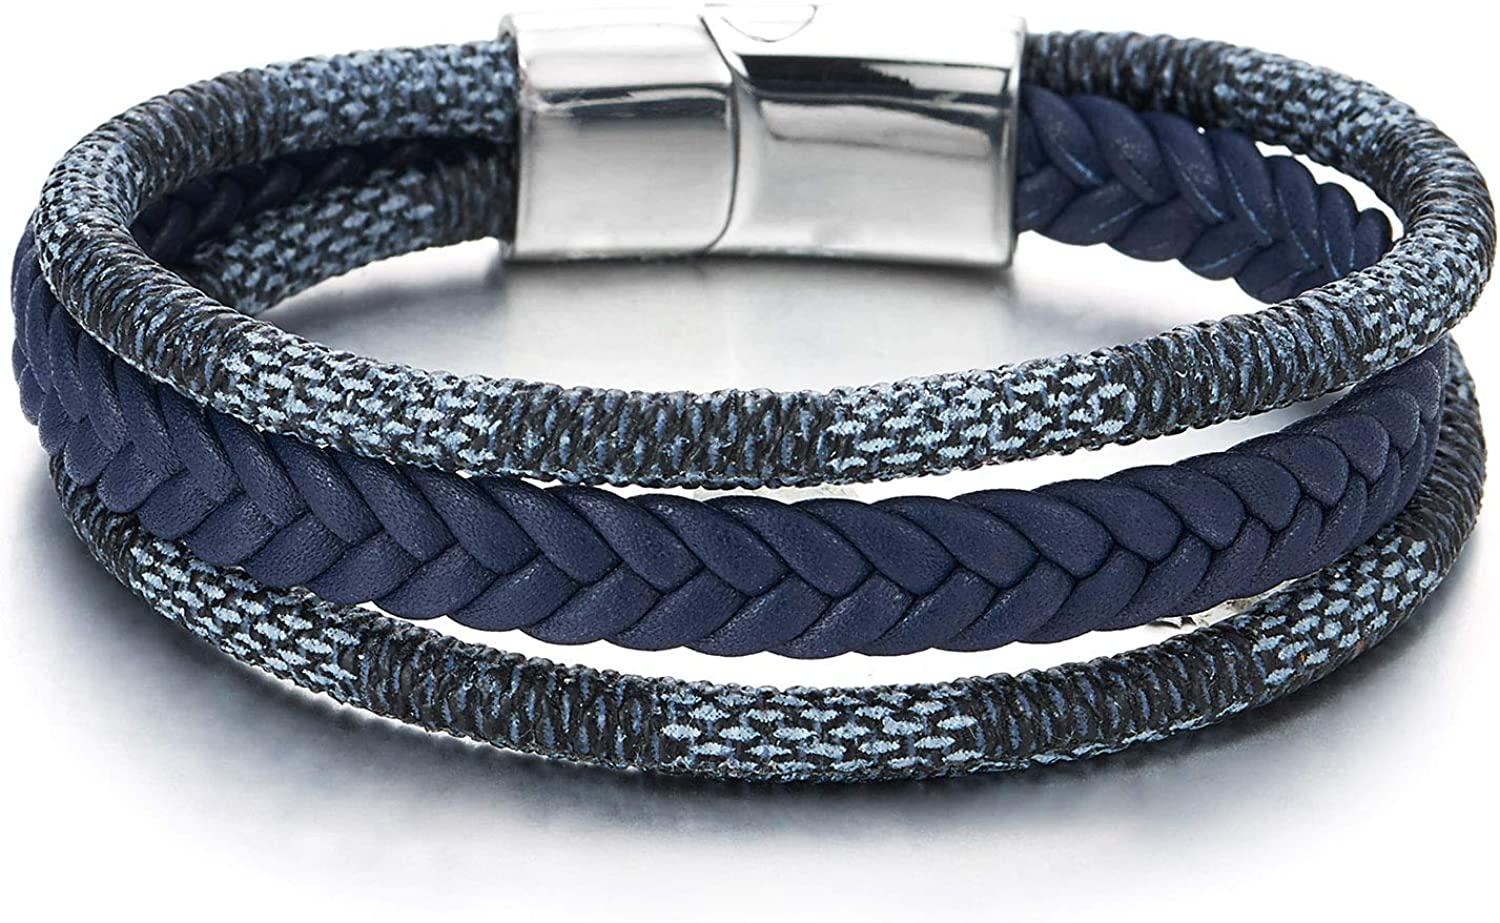 COOLSTEELANDBEYOND Men Women Three-Strand Navy Blue Braided Leather Cotton Rope Bracelet Wristband Steel Magnetic Clasp